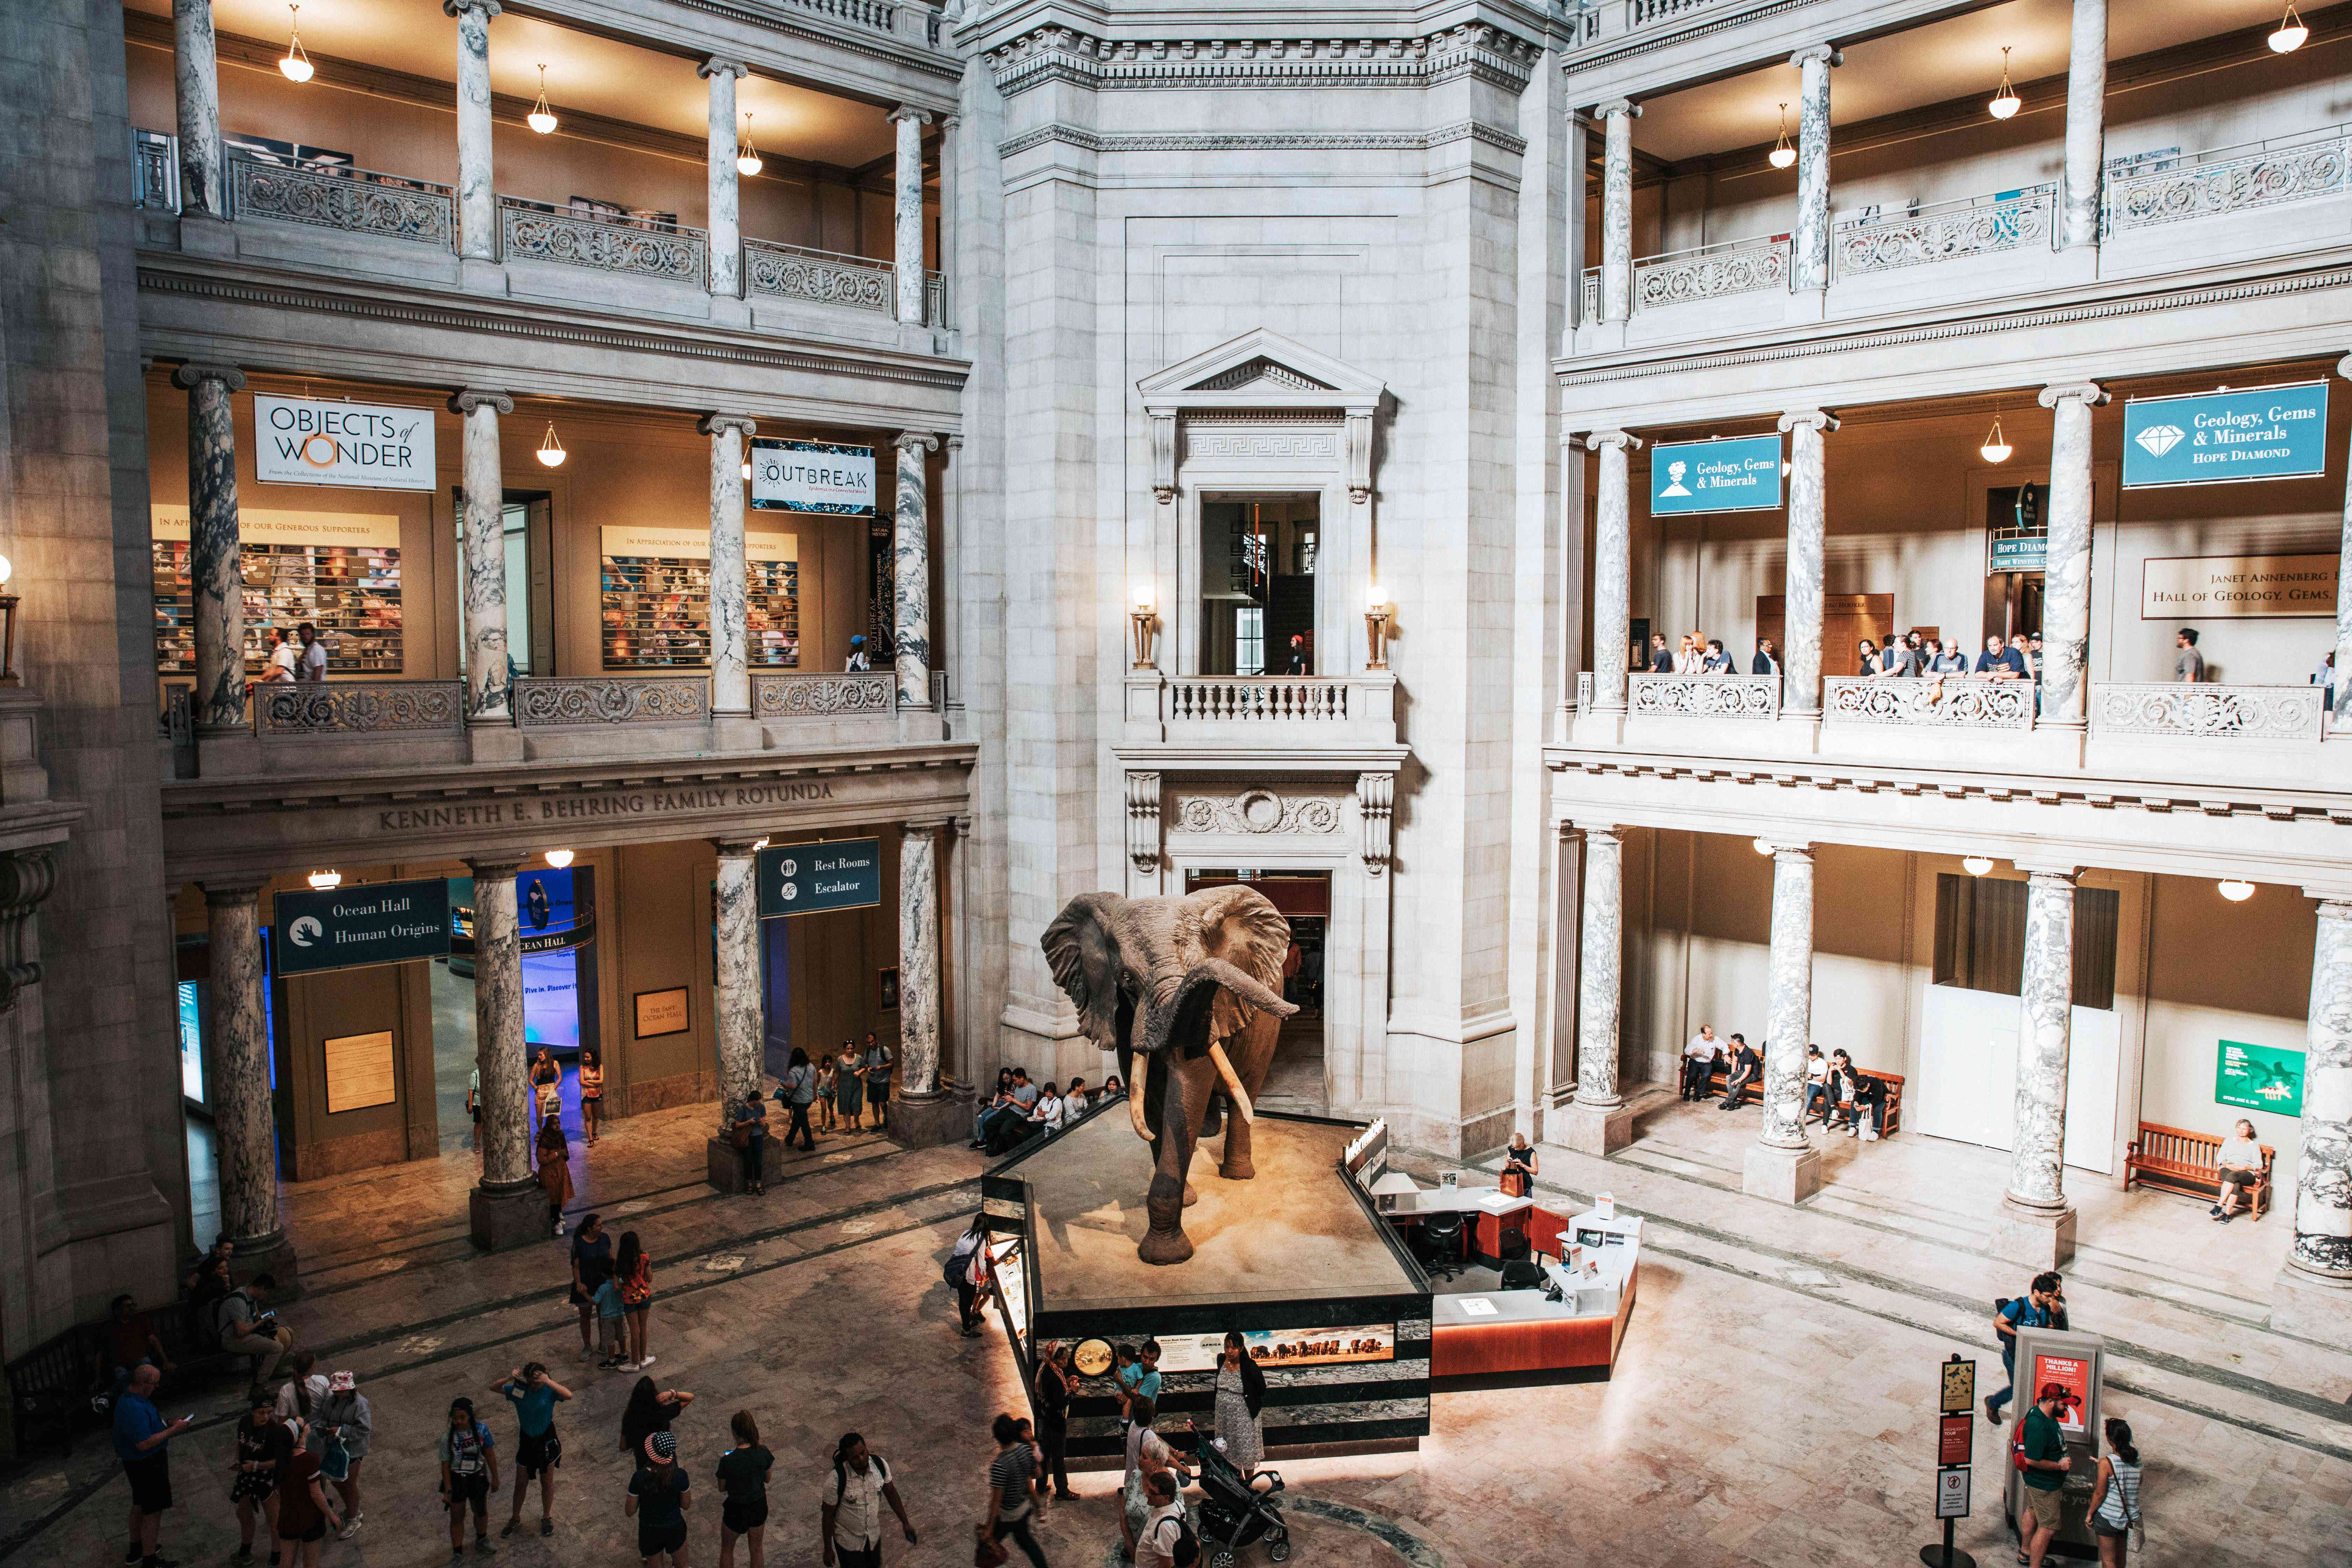 Main hall in the Natural History Museum